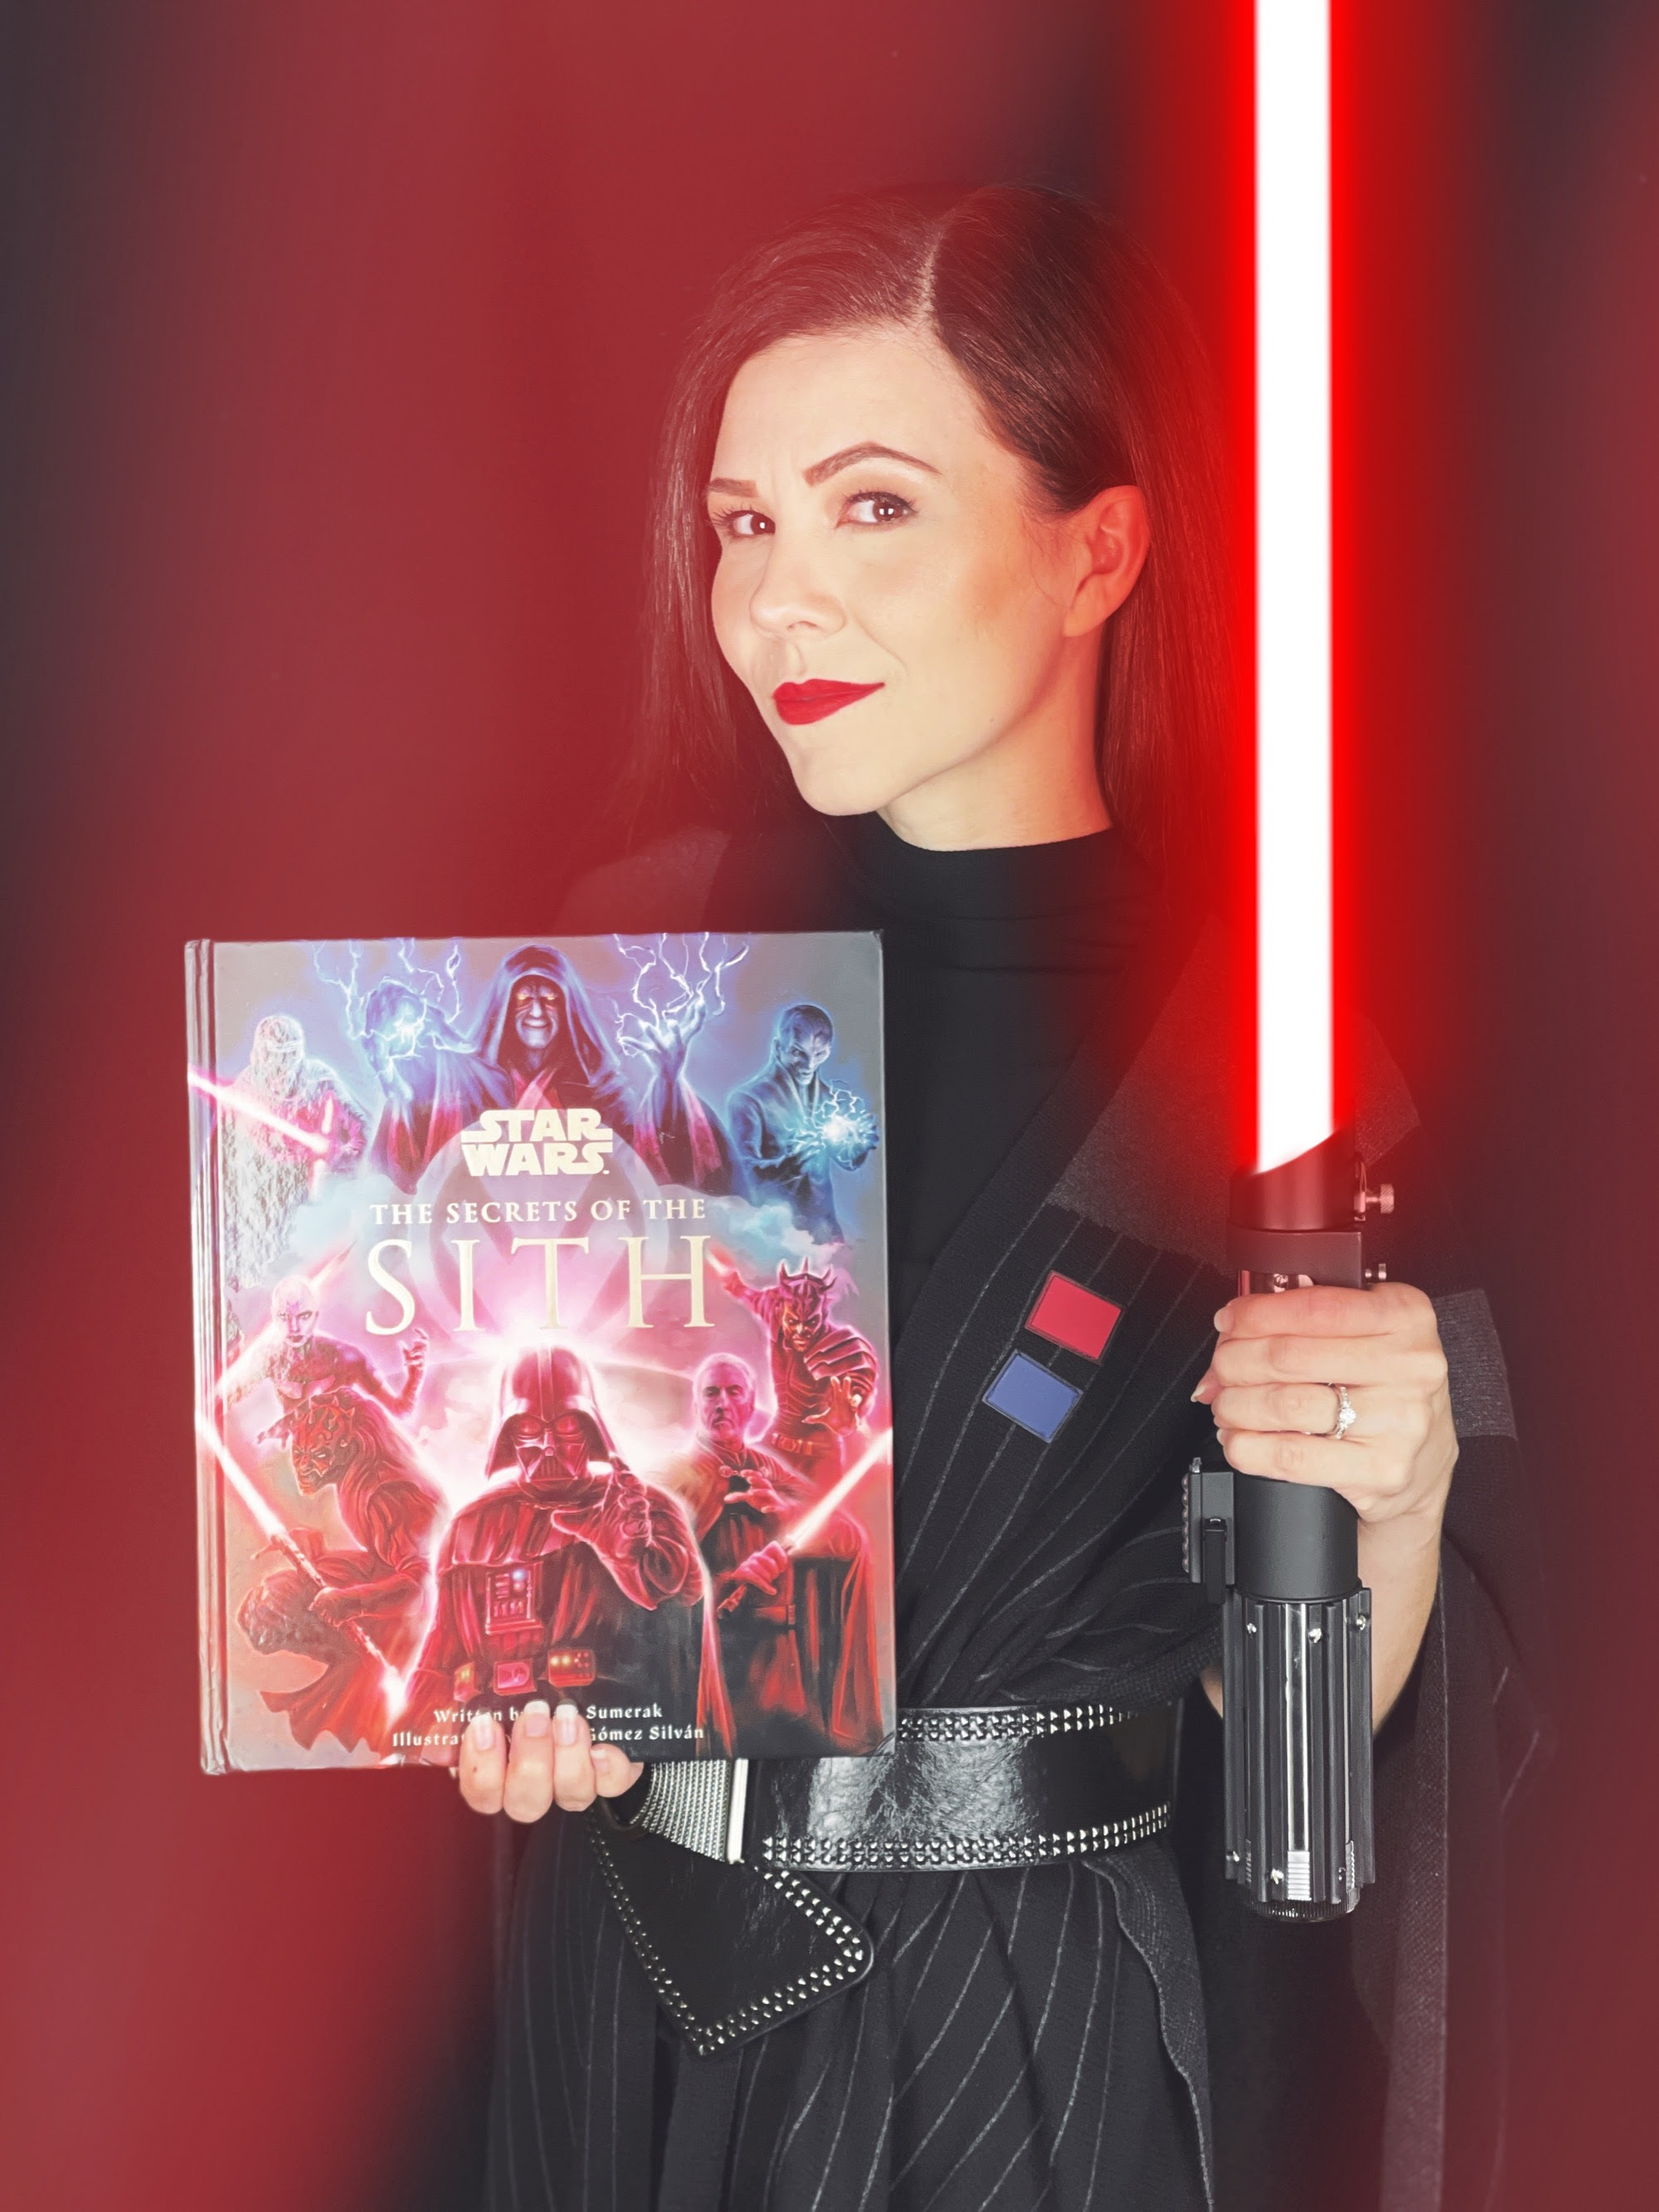 Star Wars: Secrets of the Sith Review